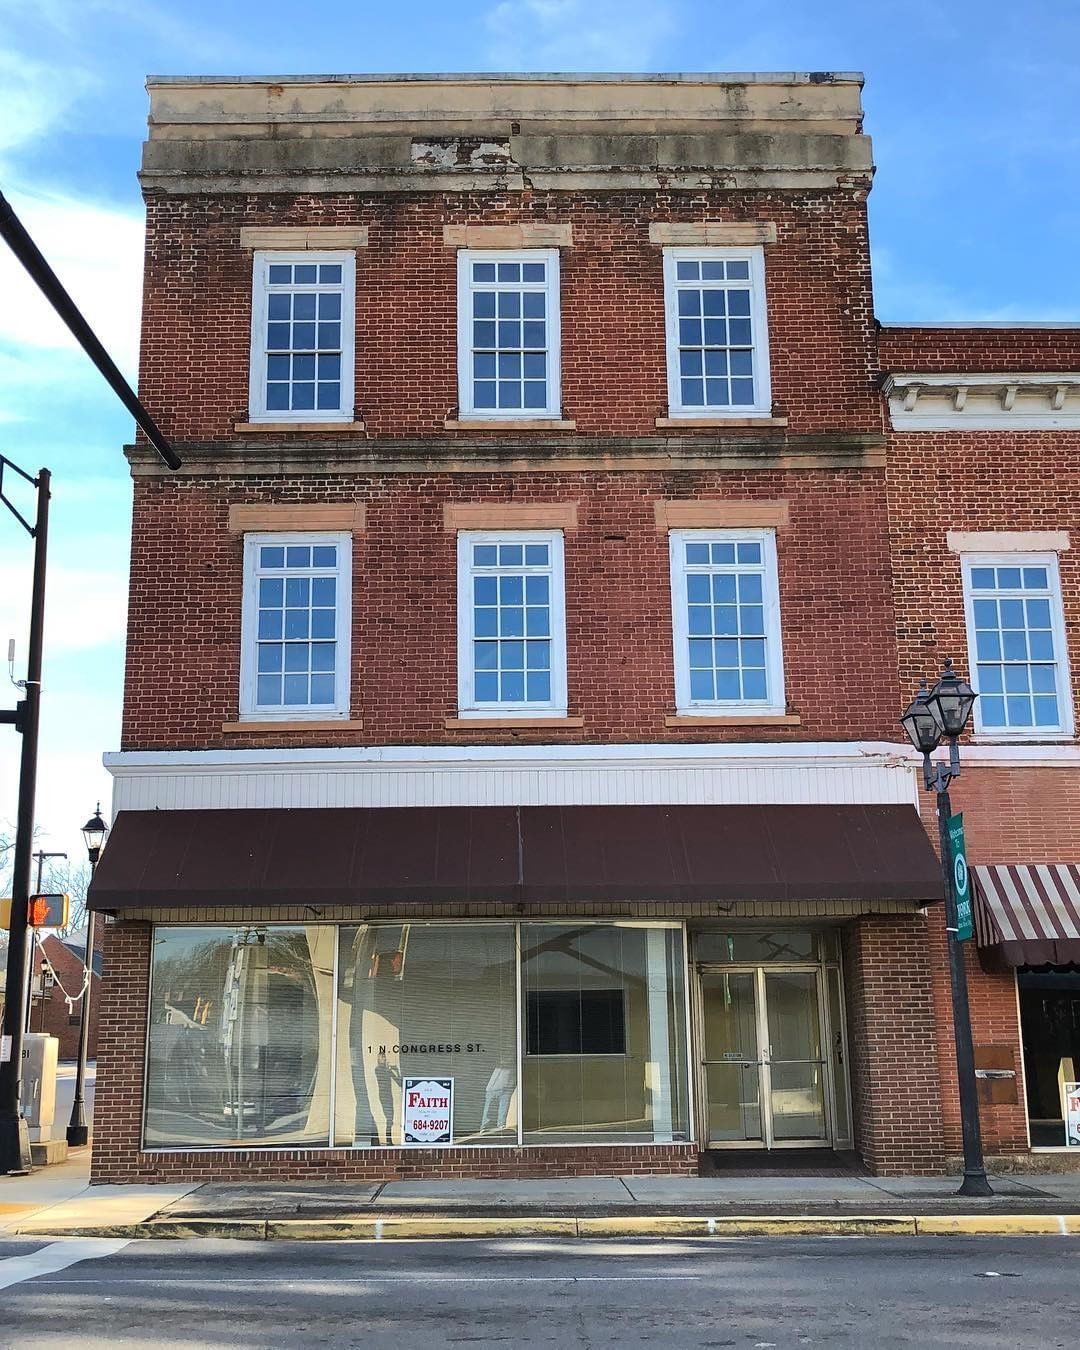 The historic Bratton Store at 1 N Congress Street in York, SC was built between 1810 and 1820